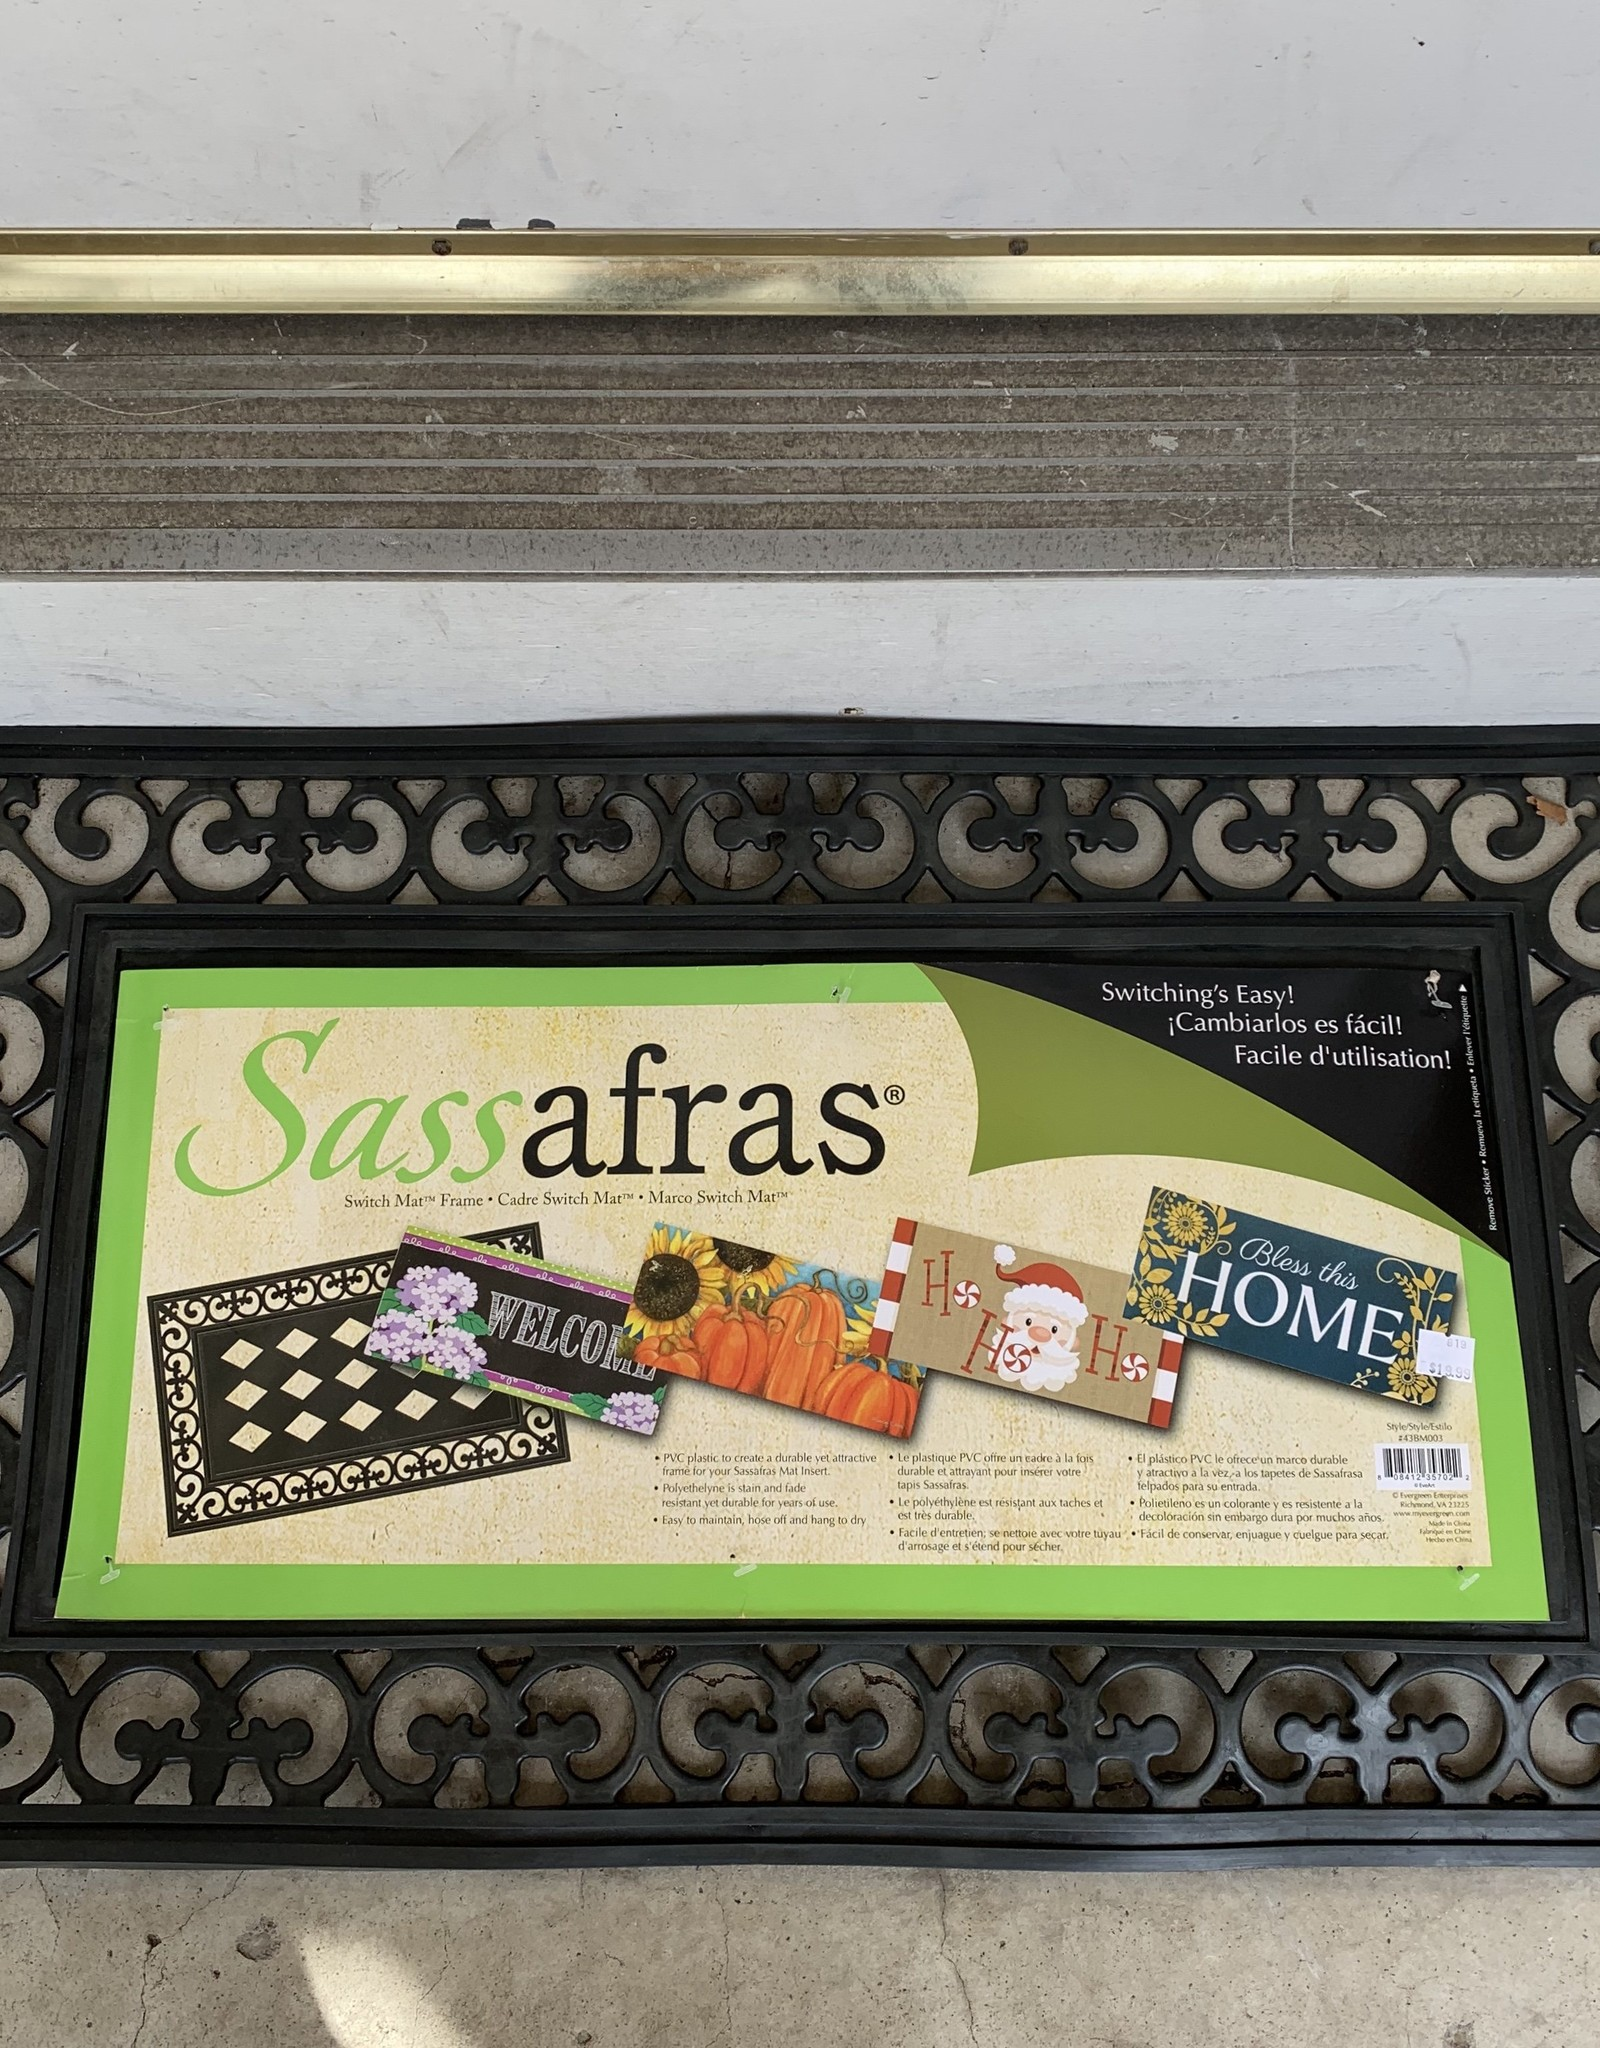 EVERGREEN ENTERPRISES, INC. BLACK SCROLL SASSAFRAS DOOR MAT